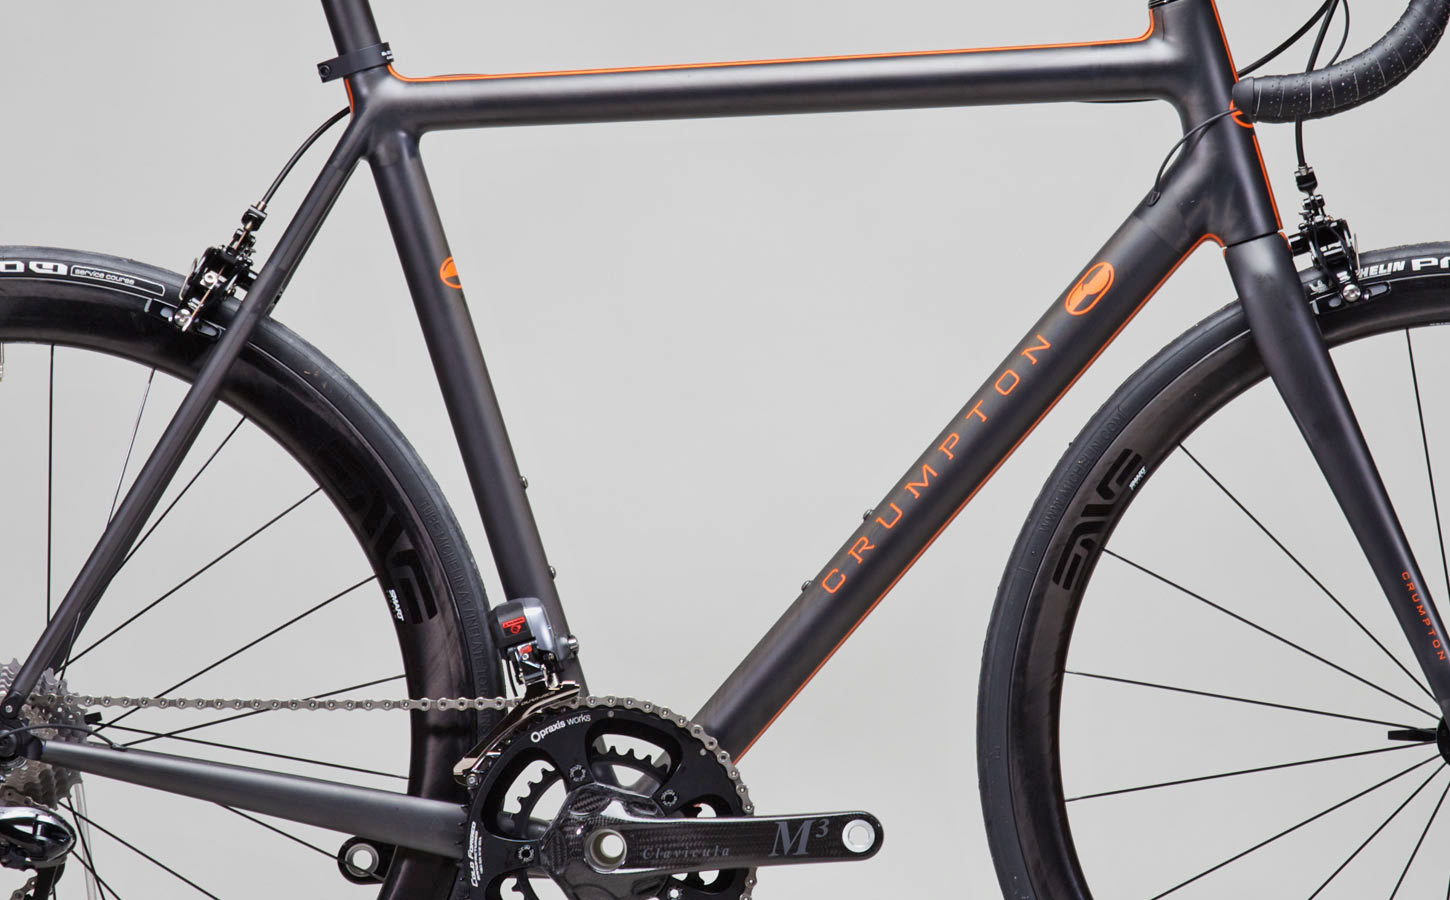 t5 with new racing stripe motif in matte orange over raw carbon